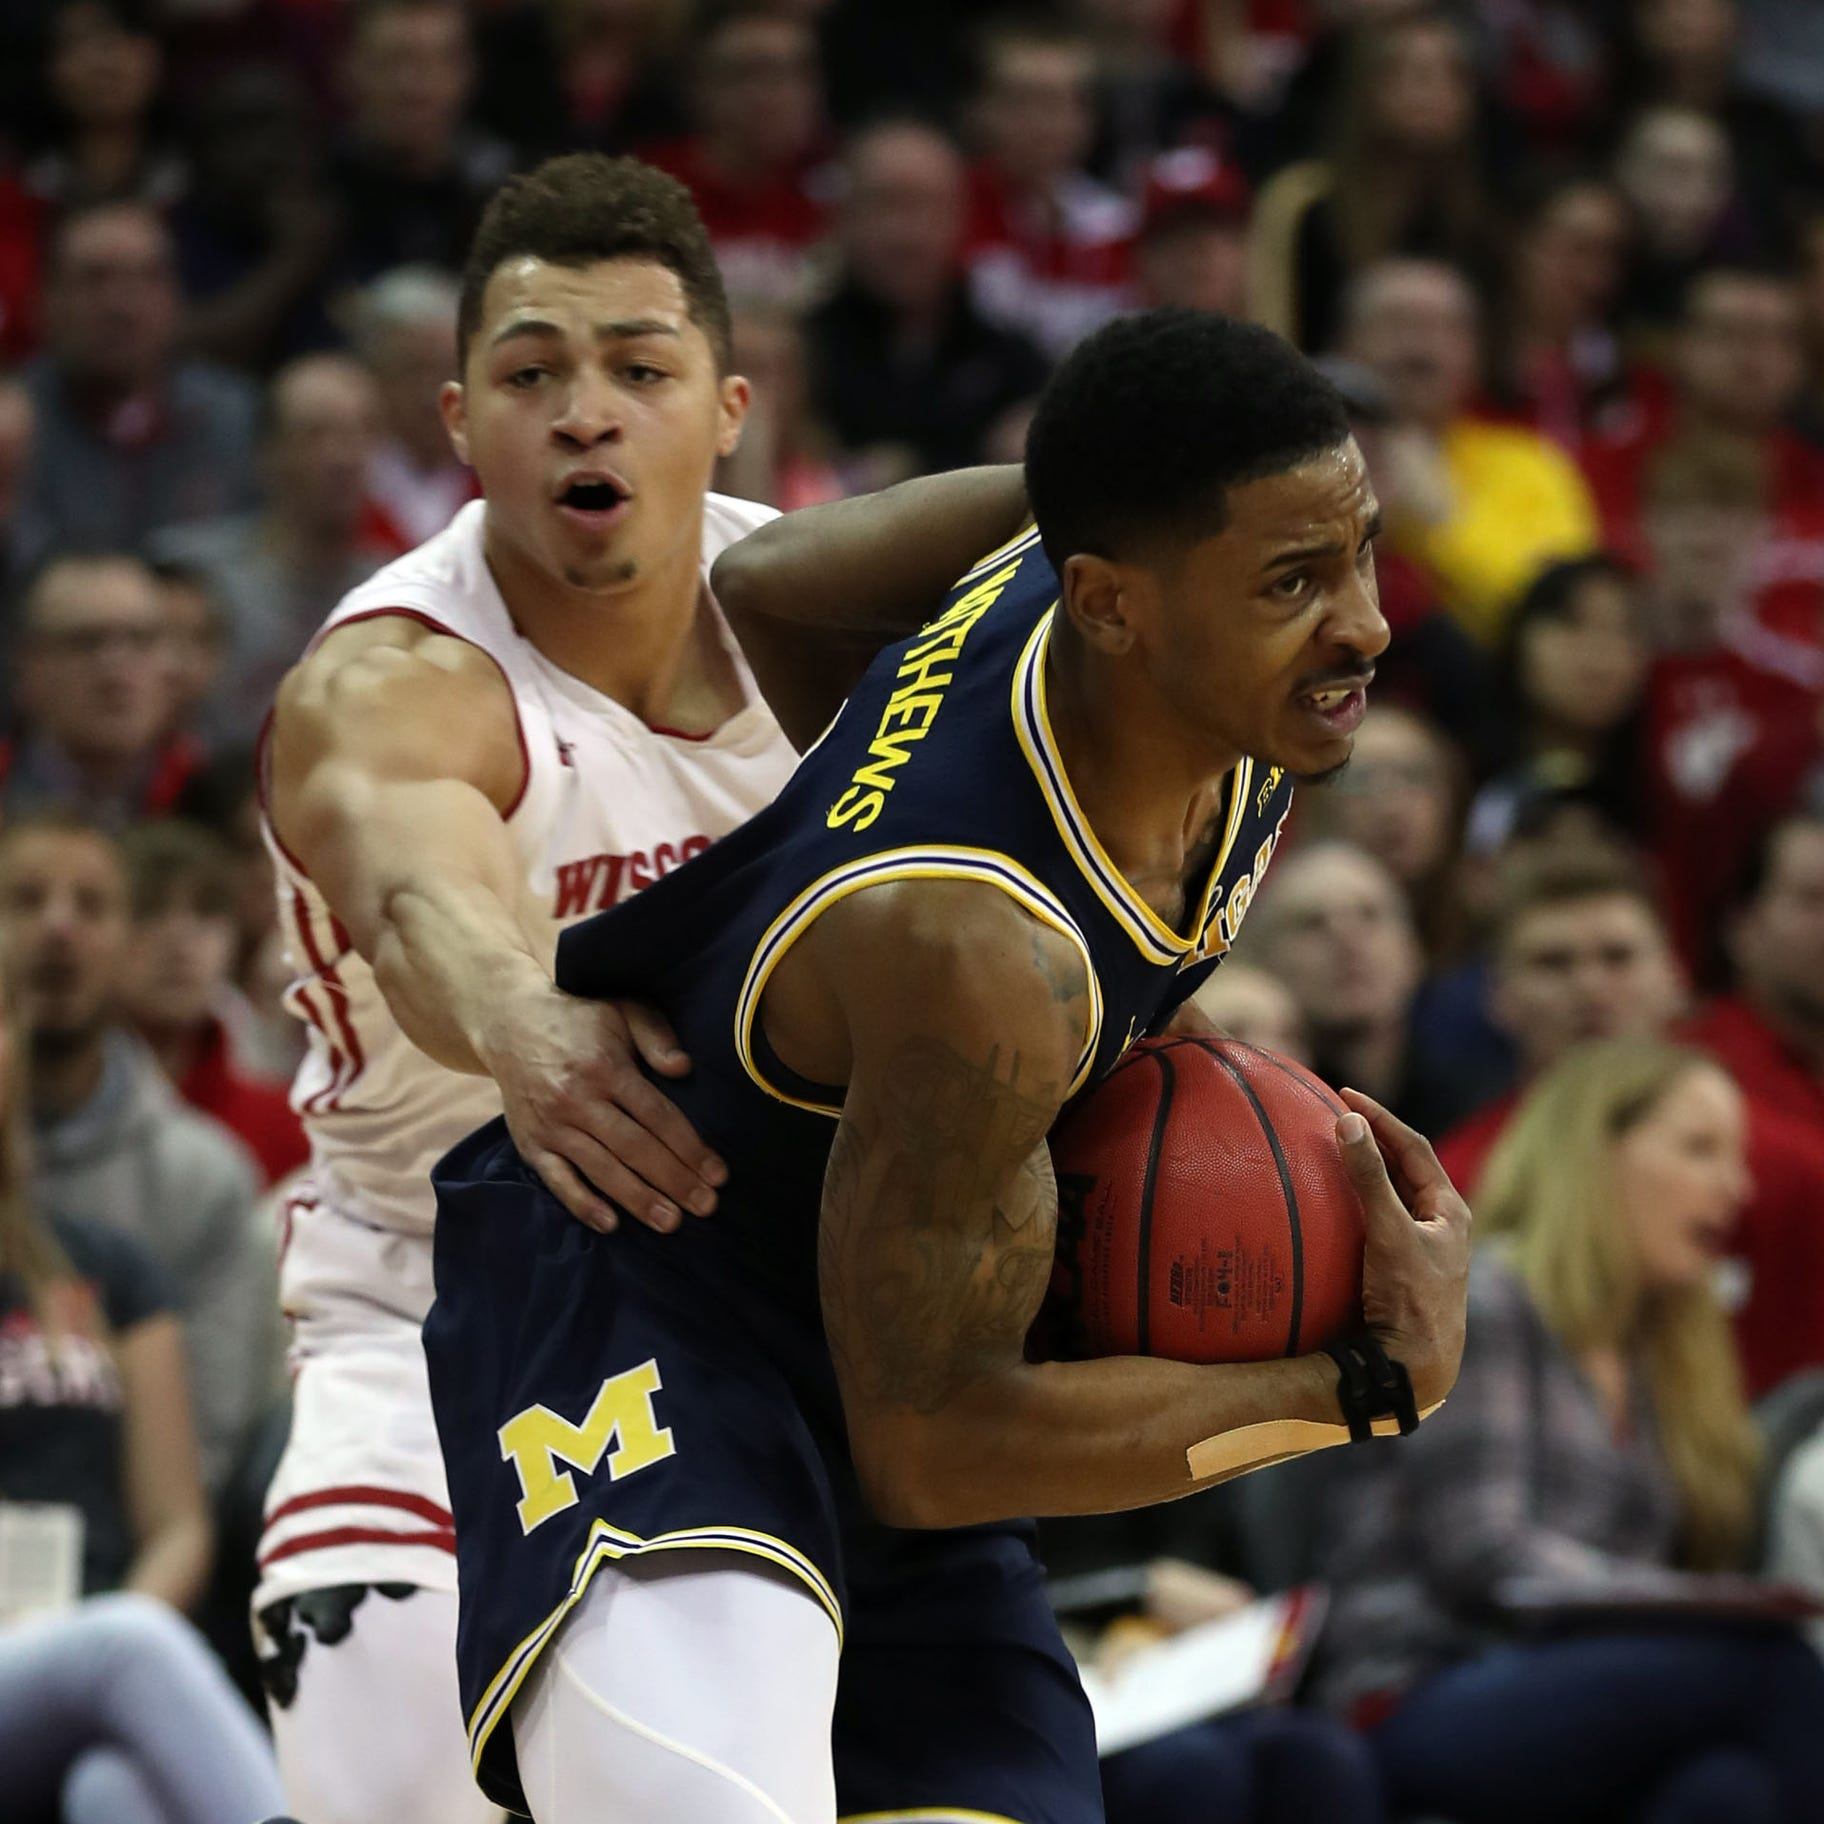 Michigan basketball must learn quickly road won't get any easier